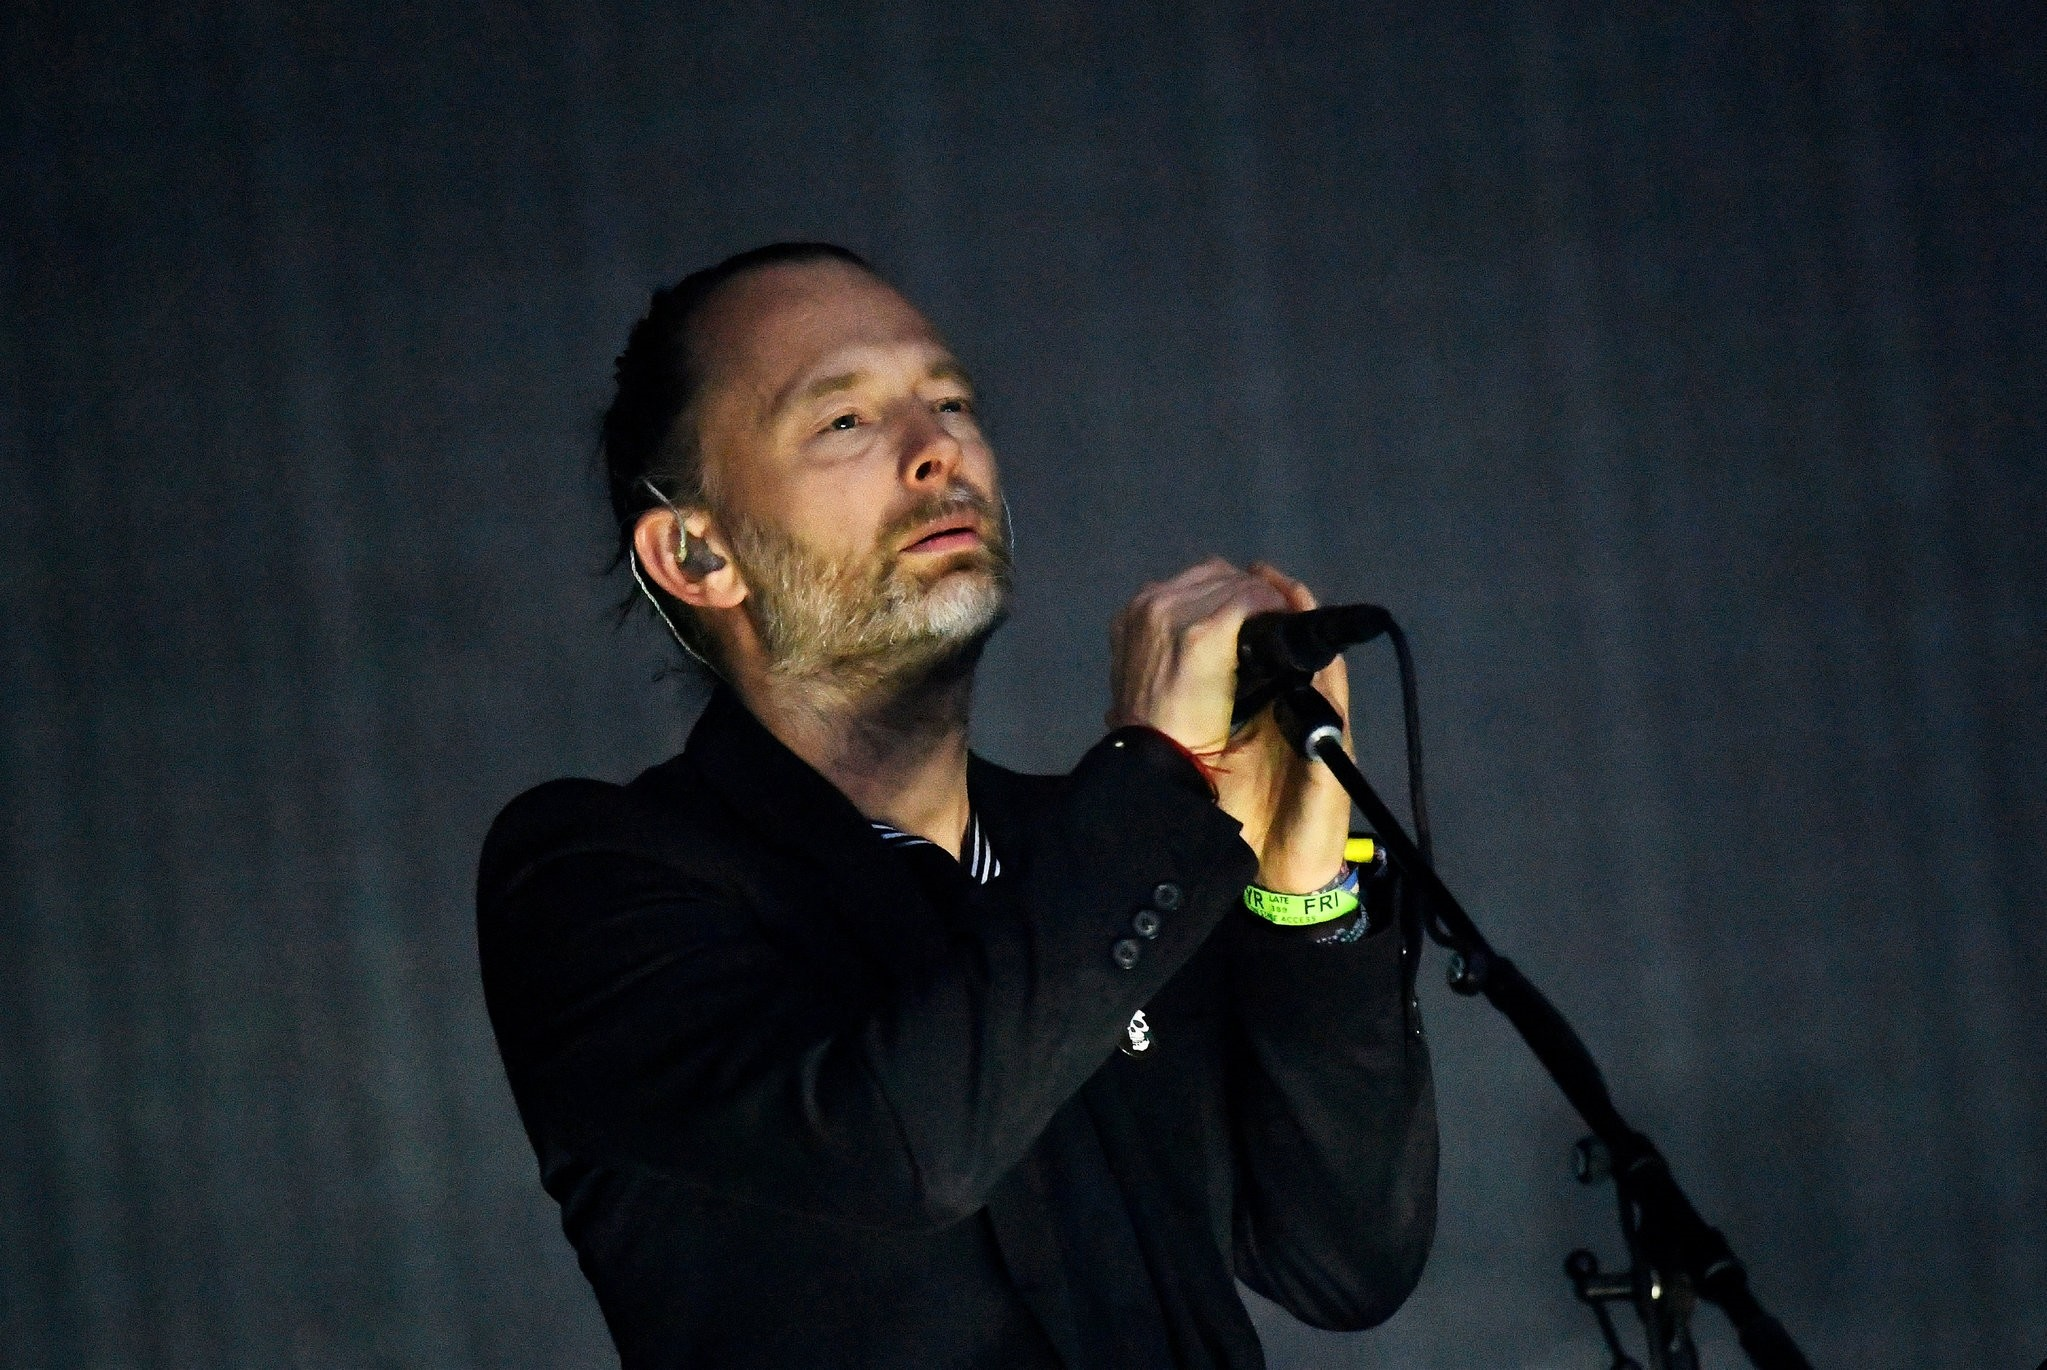 Radiohead performs on the Pyramid Stage at Worthy Farm in Somerset during the Glastonbury Festival in Britain on June 23, 2017. (REUTERS Photo)